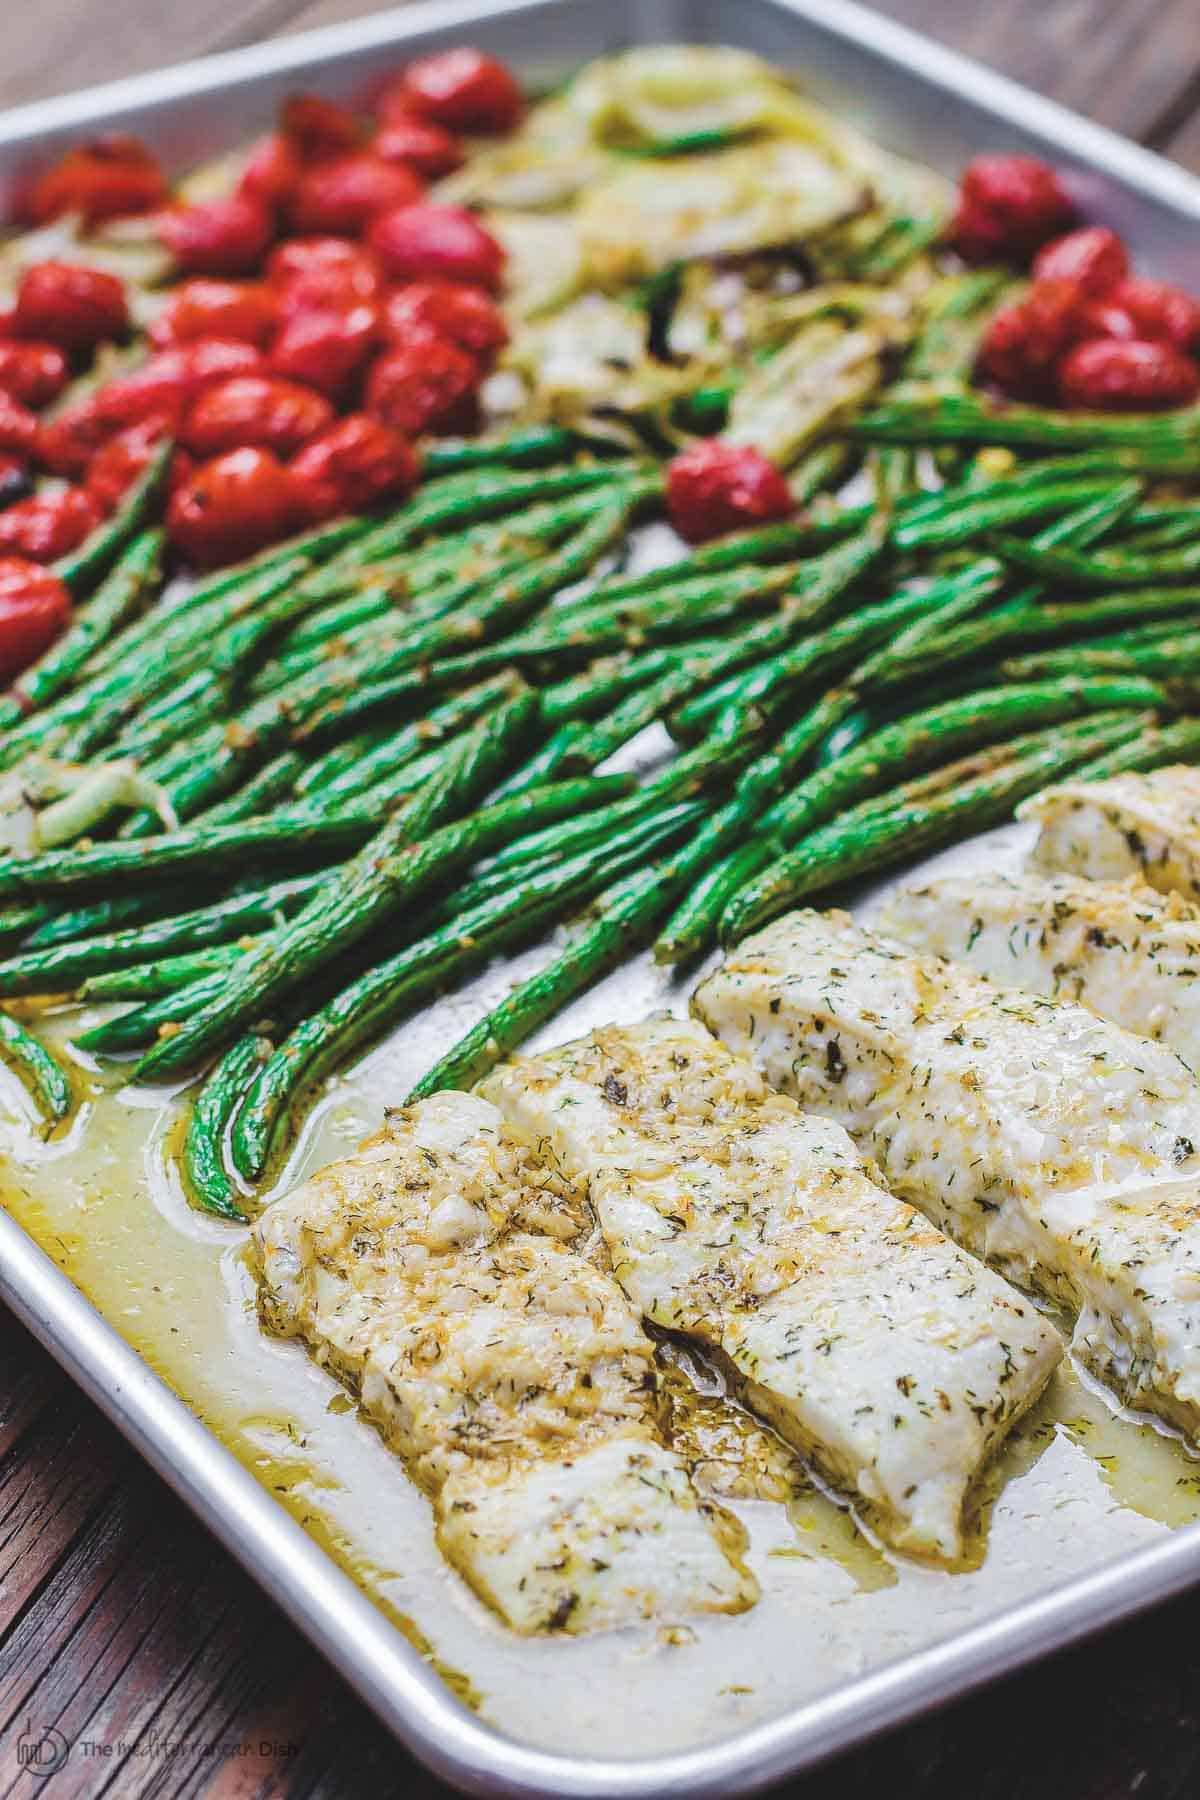 Mediterranean Baked Halibut Recipe with Green Beans and Tomatoes in Sheet Pan